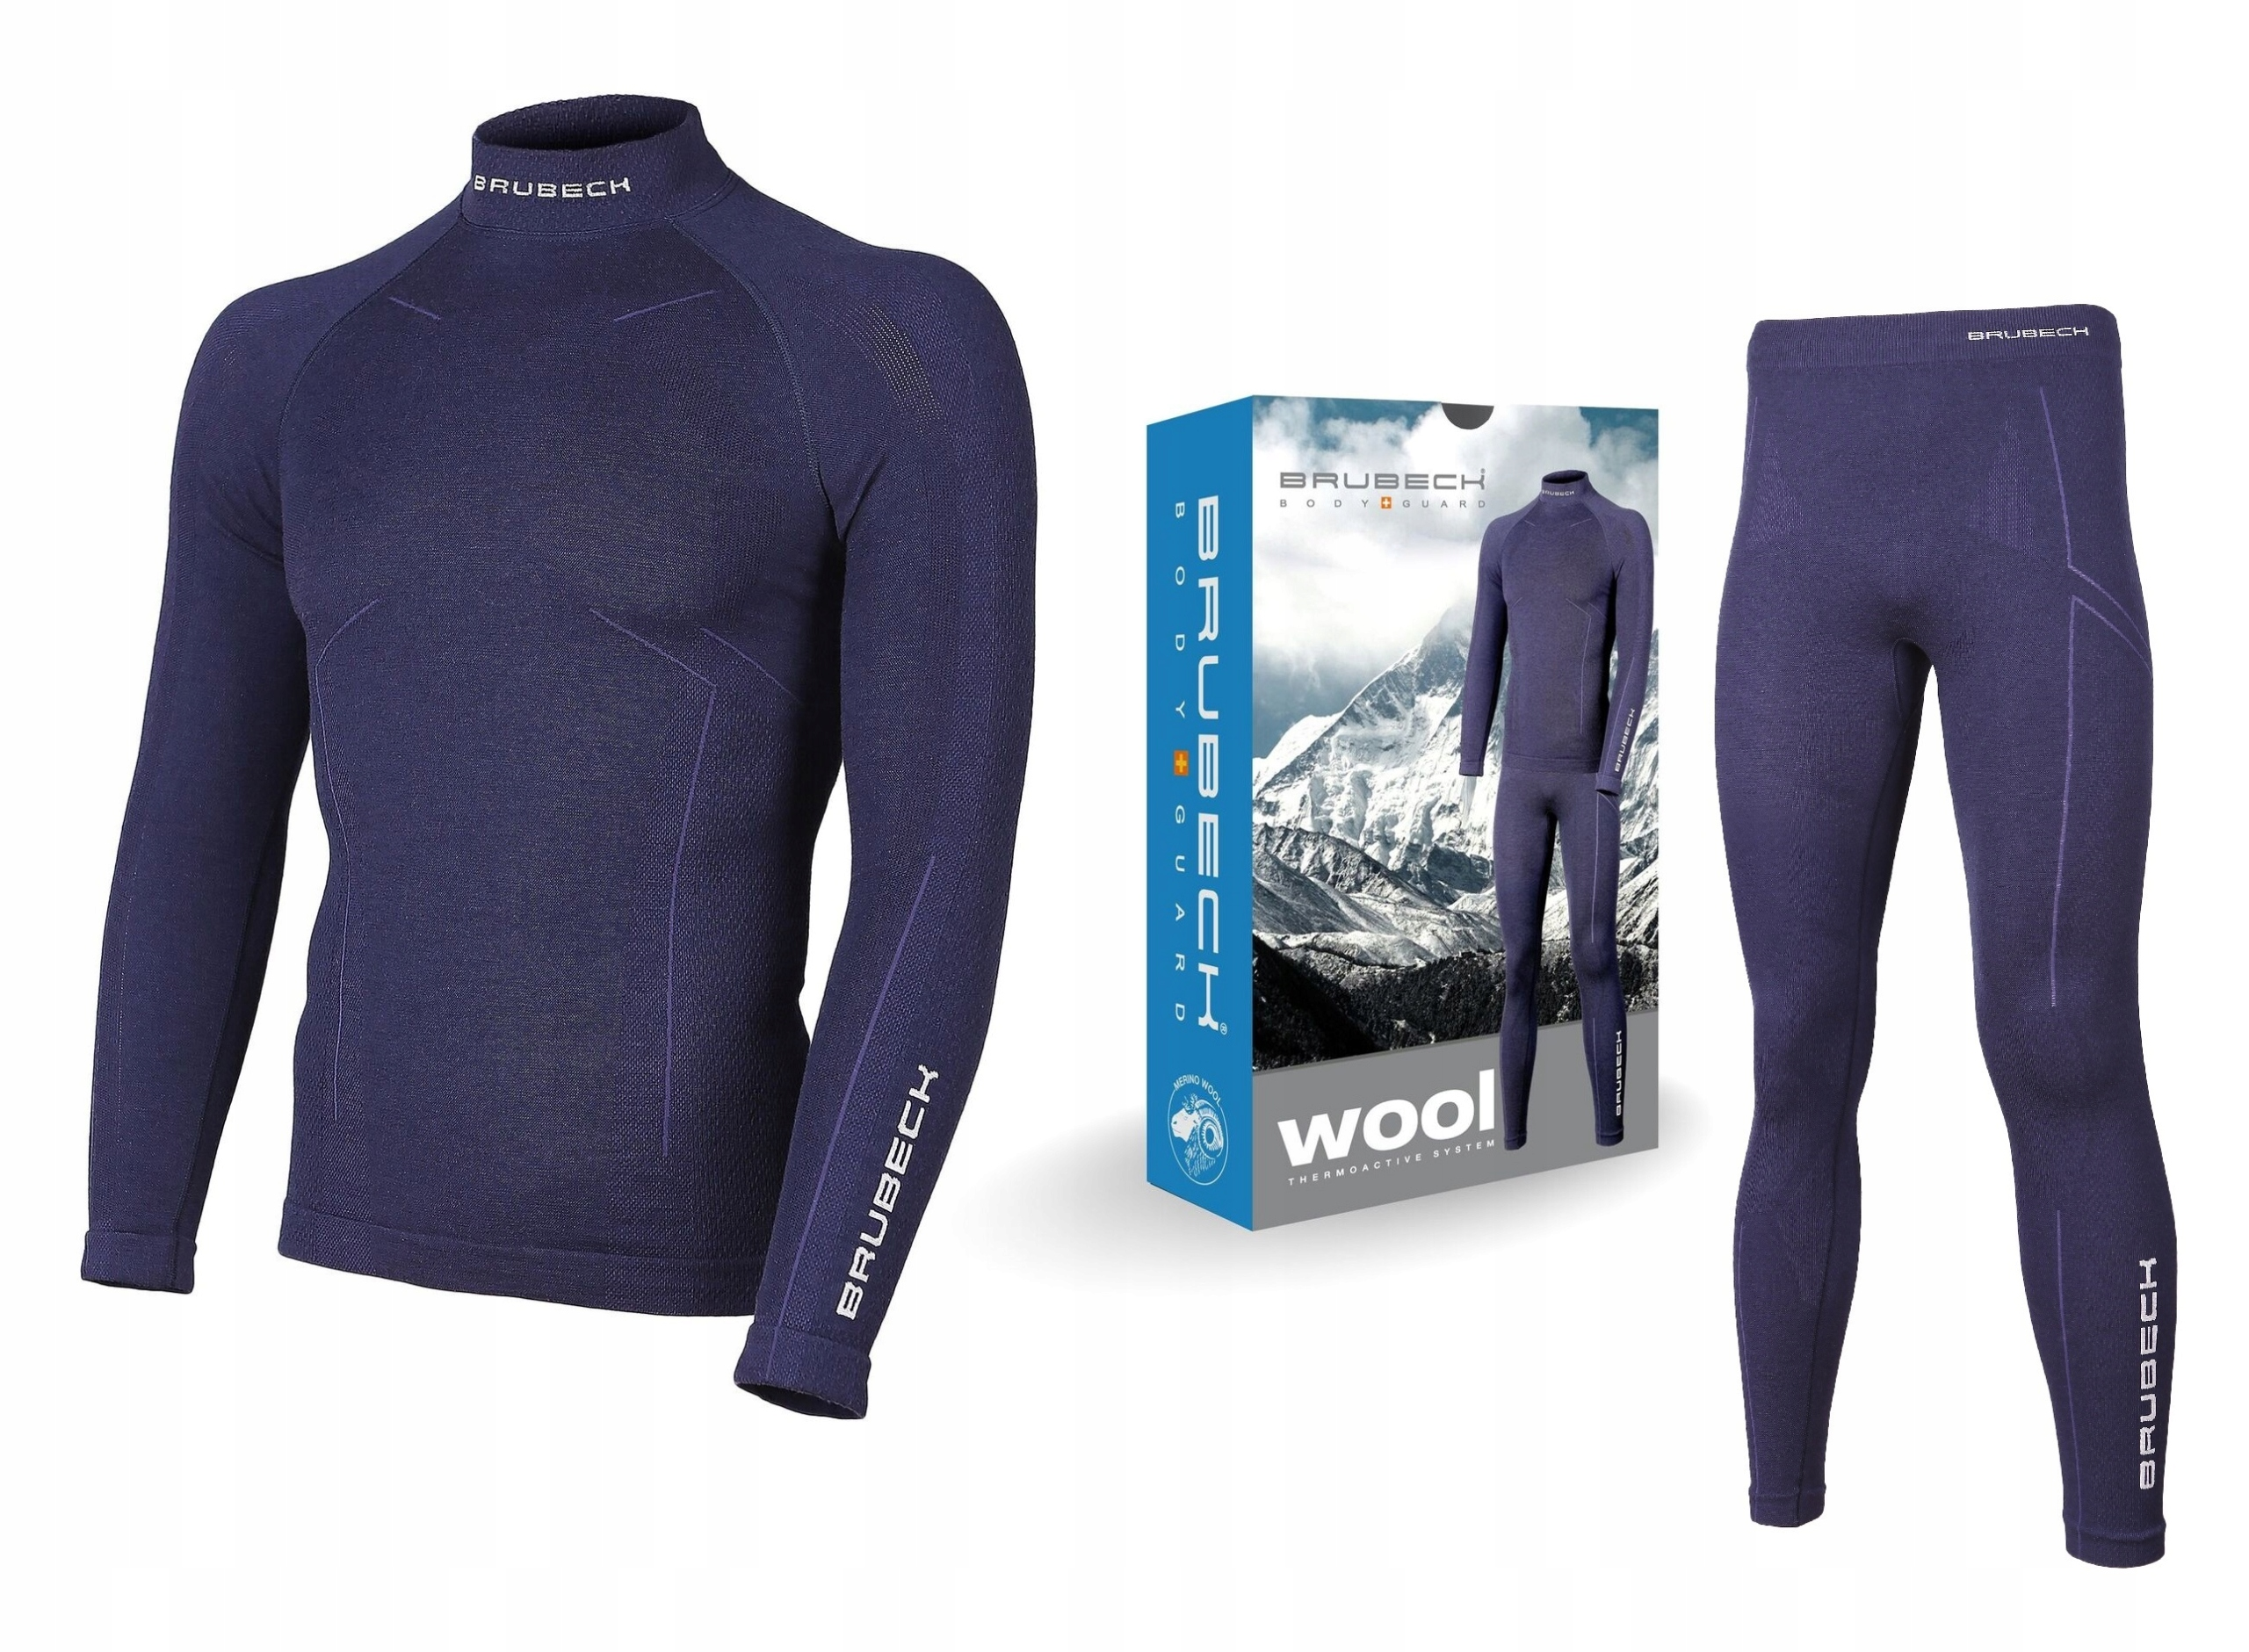 Brubeck Merino Wool MEN термобелье -М